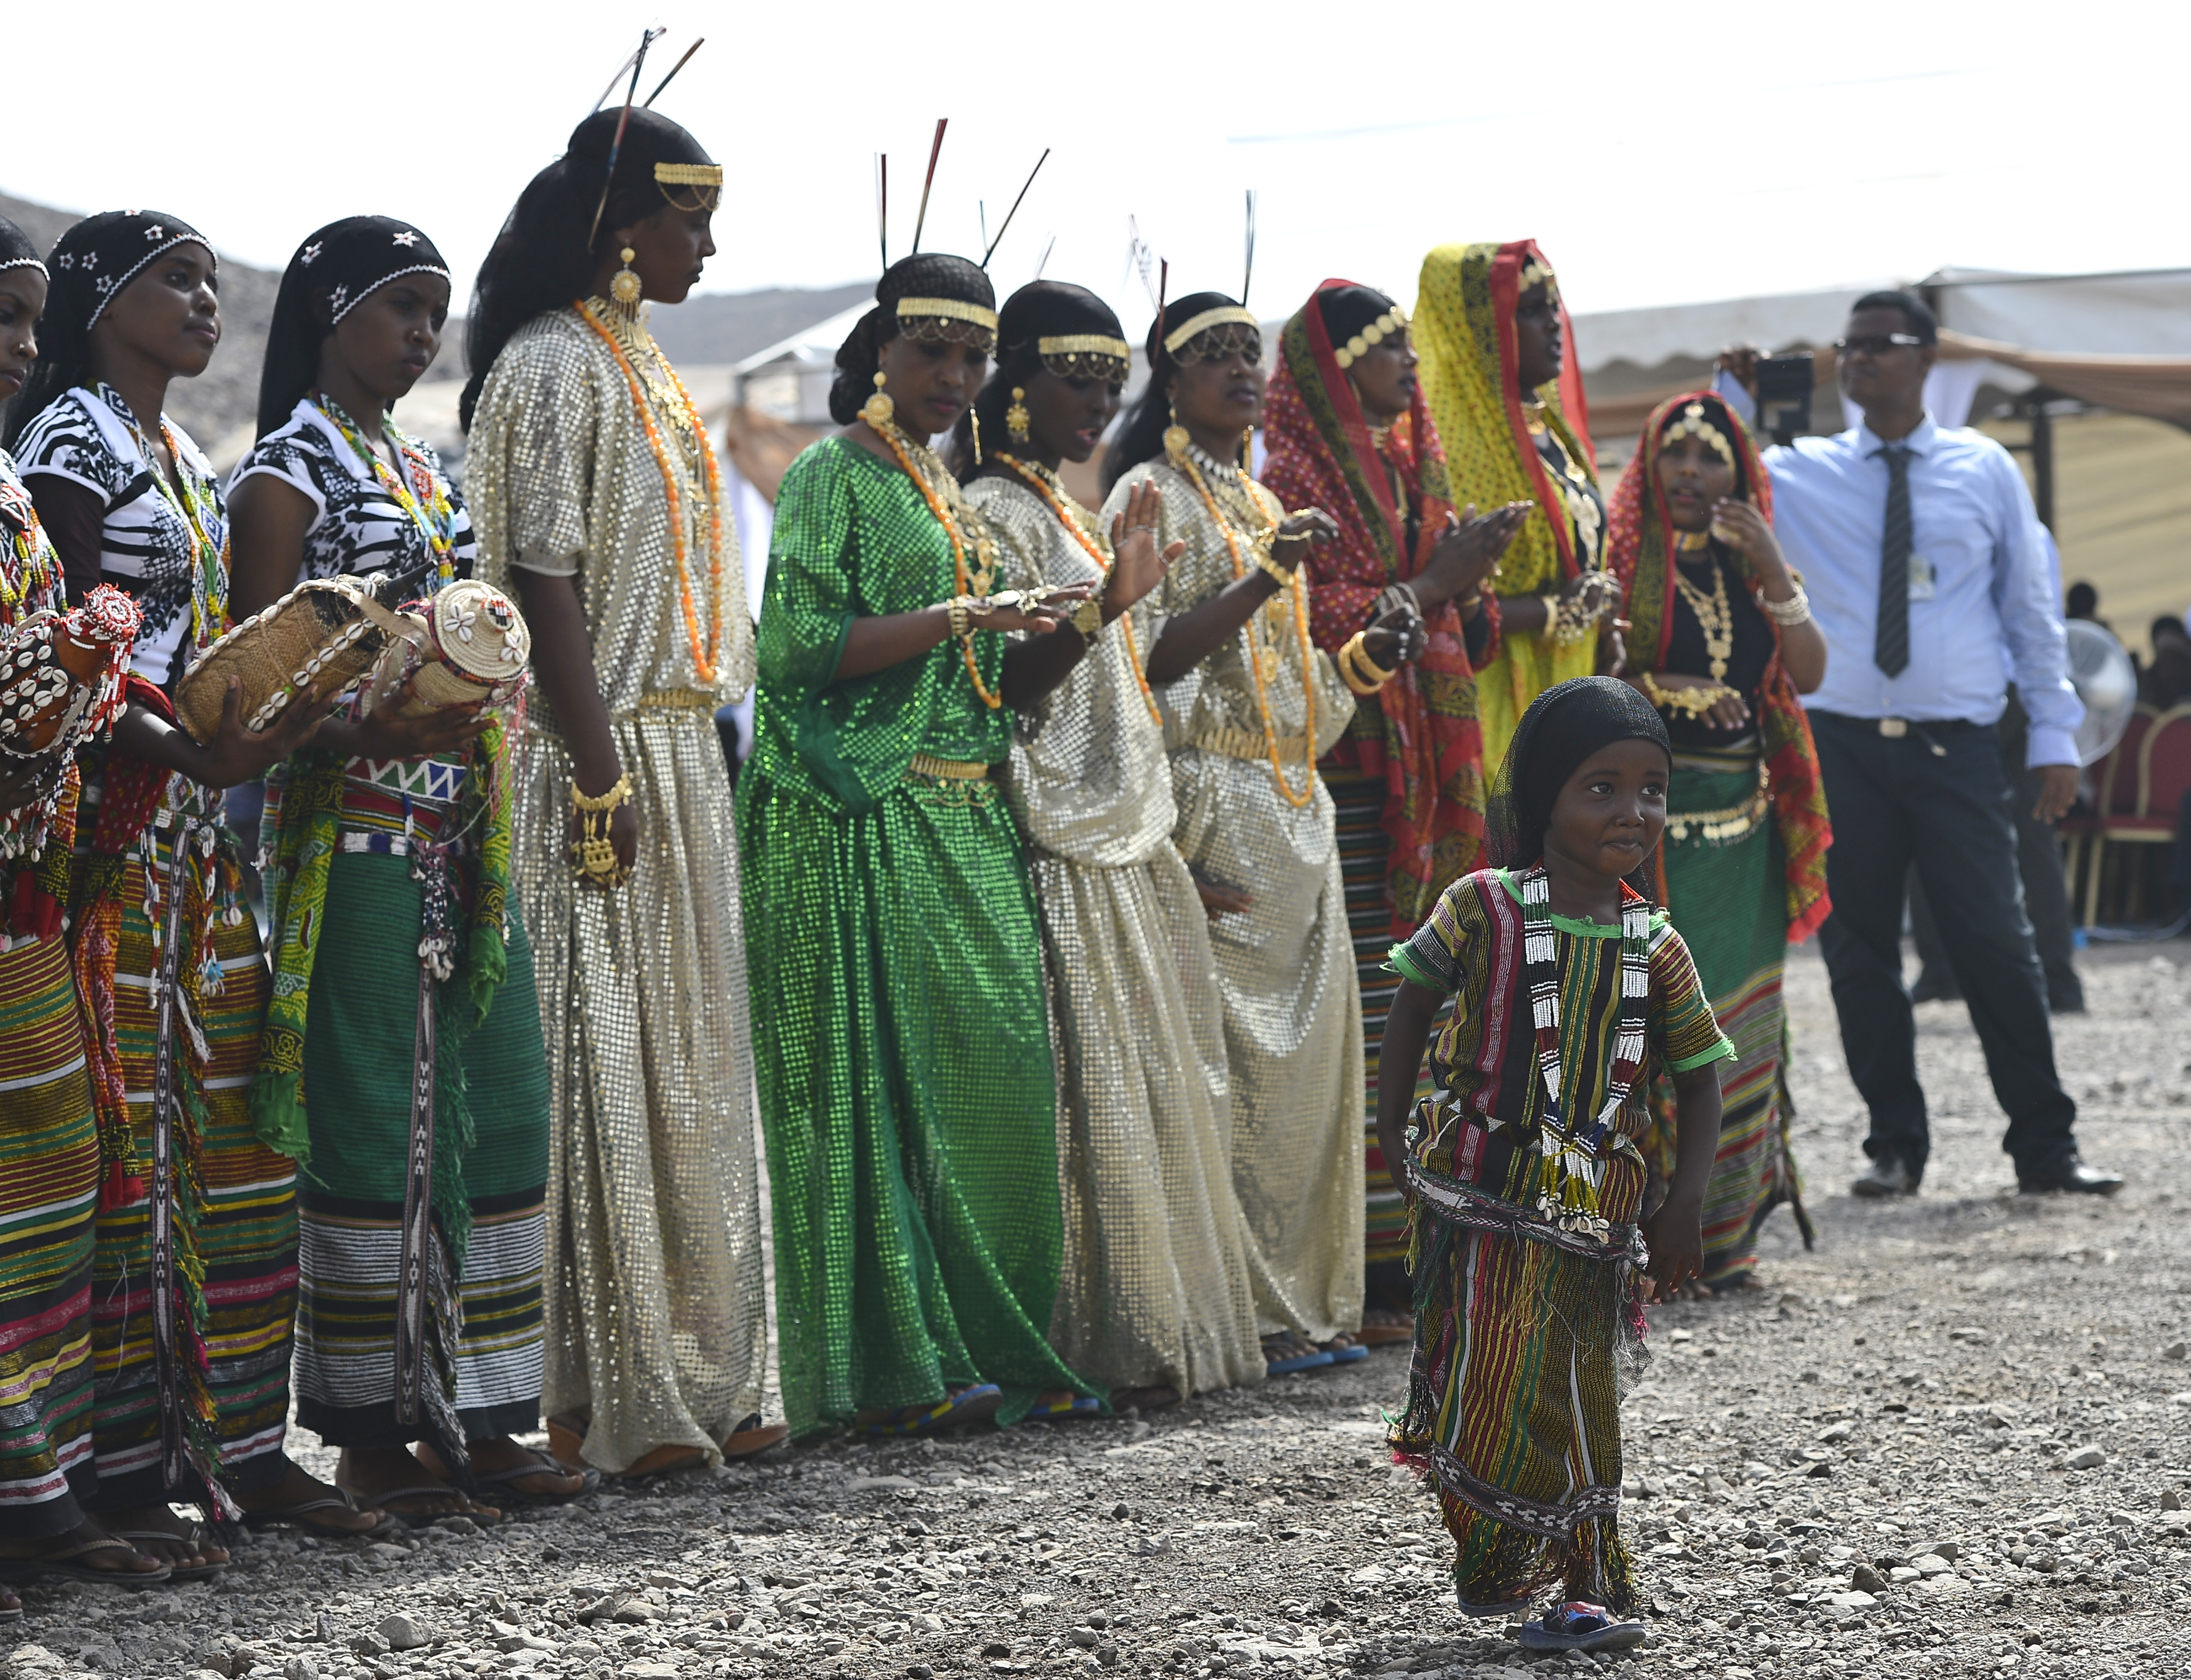 Djiboutian women dressed in traditional Afar and Issa tribal attire, dance at the 21st Induction Ceremony of the Sultan of Gobaad in Dikhil, Djibouti, May 22, 2015. The tribes' culture has primarily dominated customs throughout Djibouti's history. (U.S. Air Force photo by Senior Airman Nesha Humes)